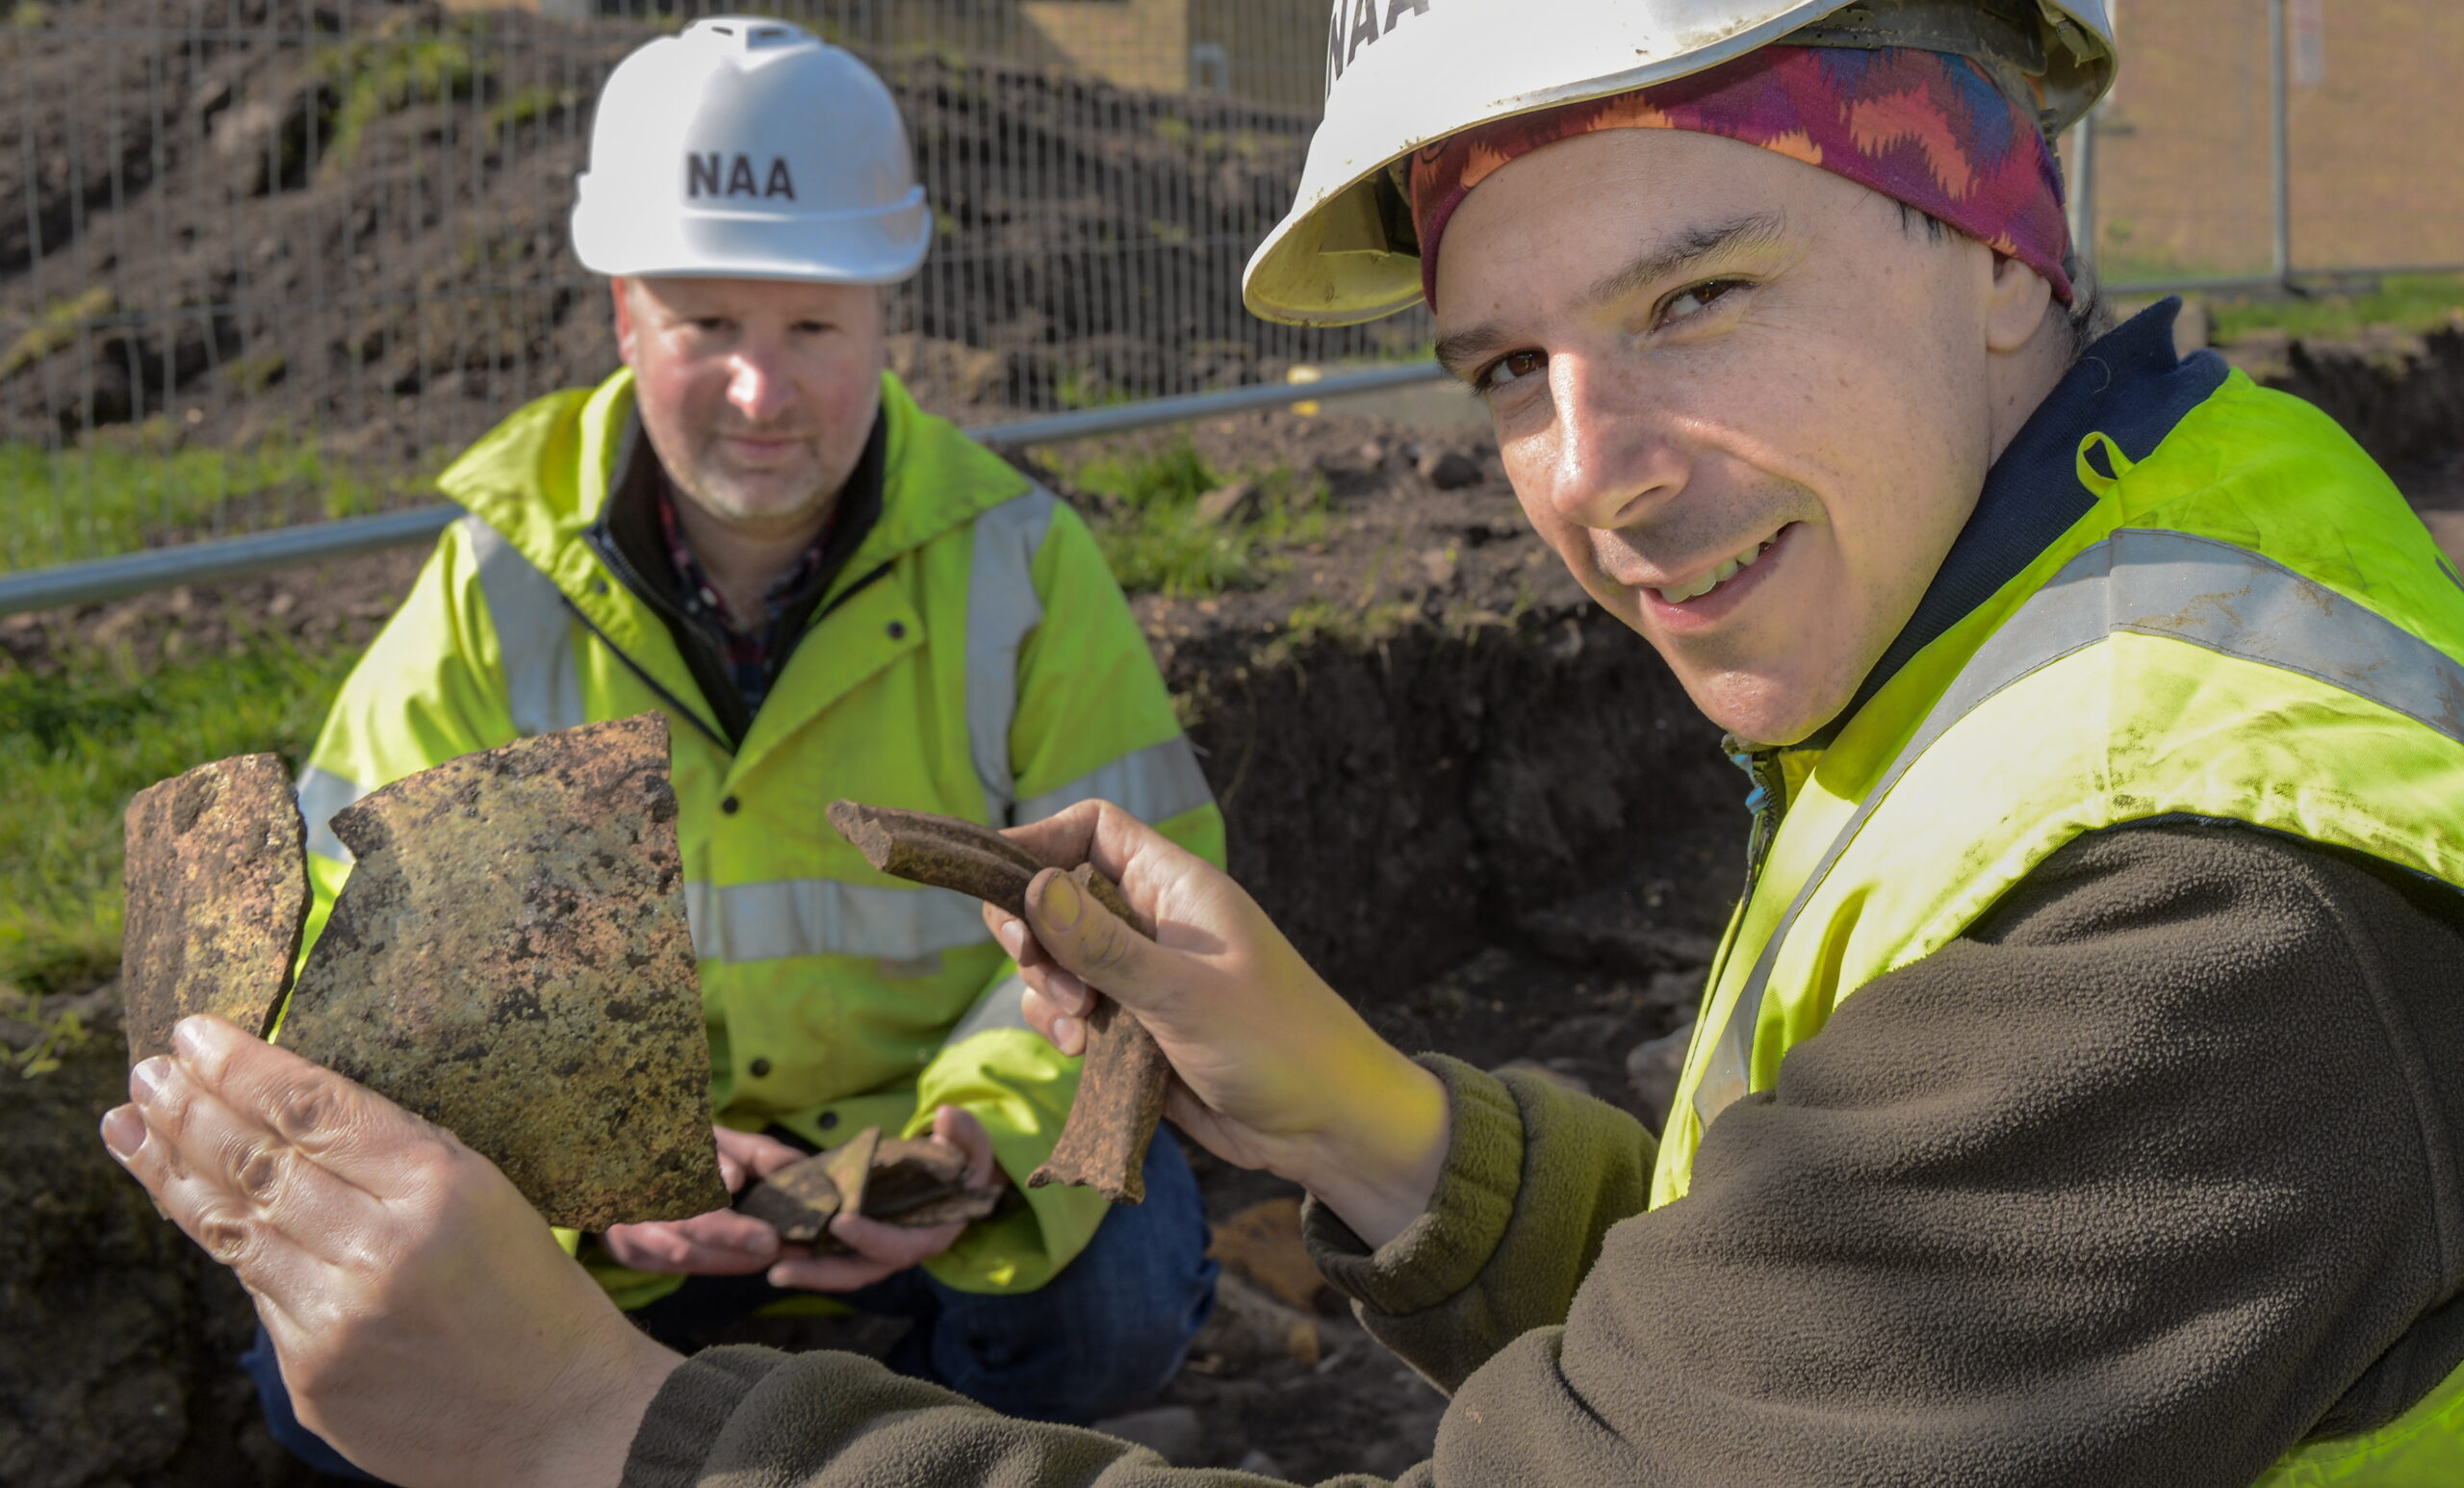 Berwick Infirmary excavation uncovers medieval structures